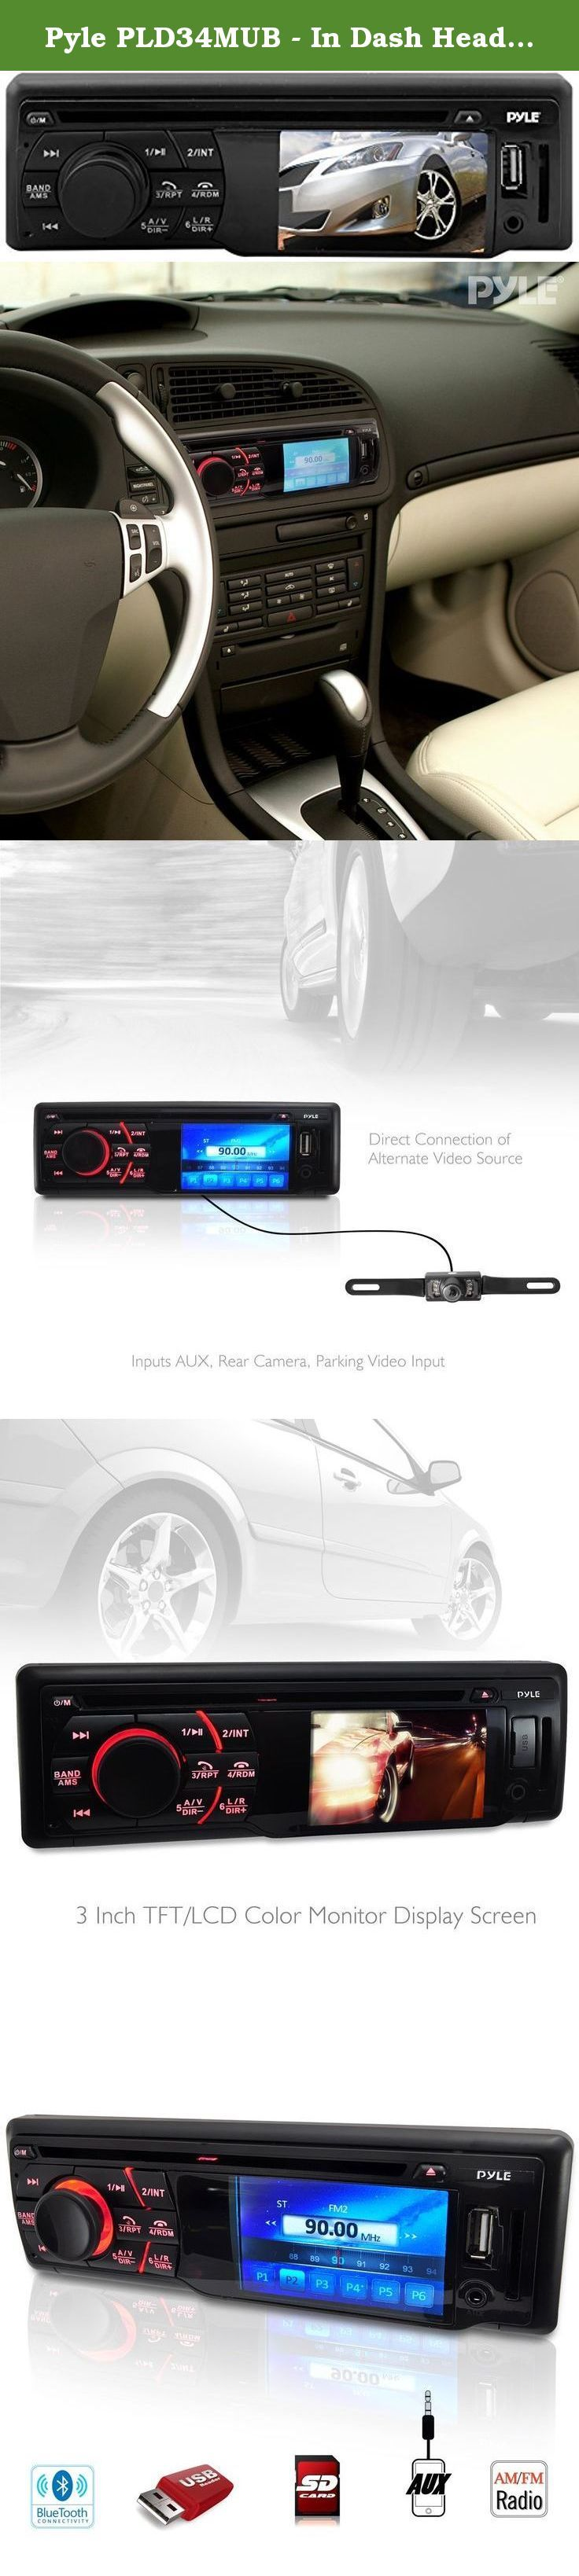 Pyle PLD34MUB - In Dash Head Unit Digital Receiver - Equipped with CD/DVD Player, Video Display, Built in Hands Free Bluetooth, Aux Input, USB for MP3 Files and AM/FM Tuner - Fits all Single Din Size Vehicles. The Pyle Bluetooth Digital Video Head unit Receiver is the ultimate in-car media accessory. It has everything you want in a modern head unit: Bluetooth wireless music streaming, hands-free call answering ability, AM/FM tuning with 30 station presets, CD/DVD player, USB flash drive…